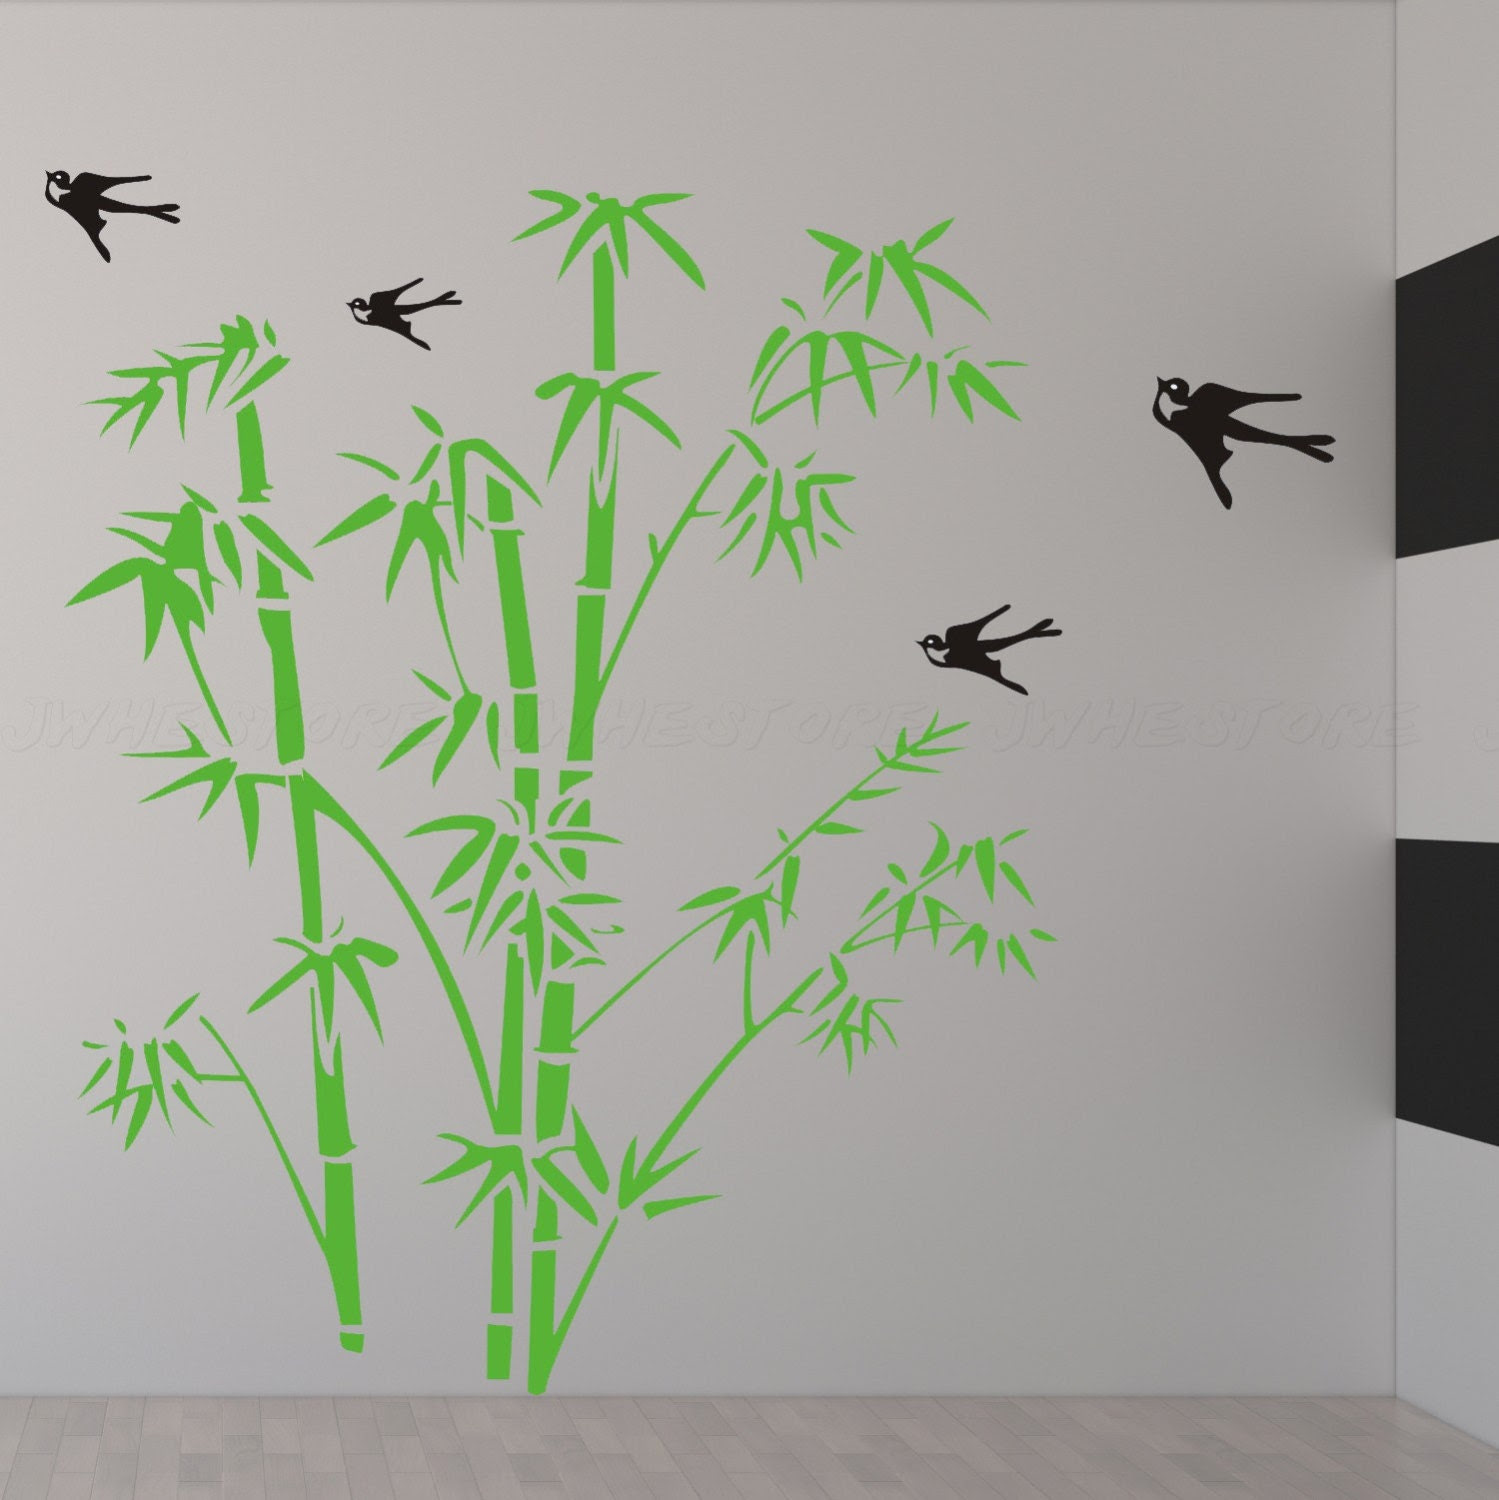 Popular items for bamboo wall decor on Etsy